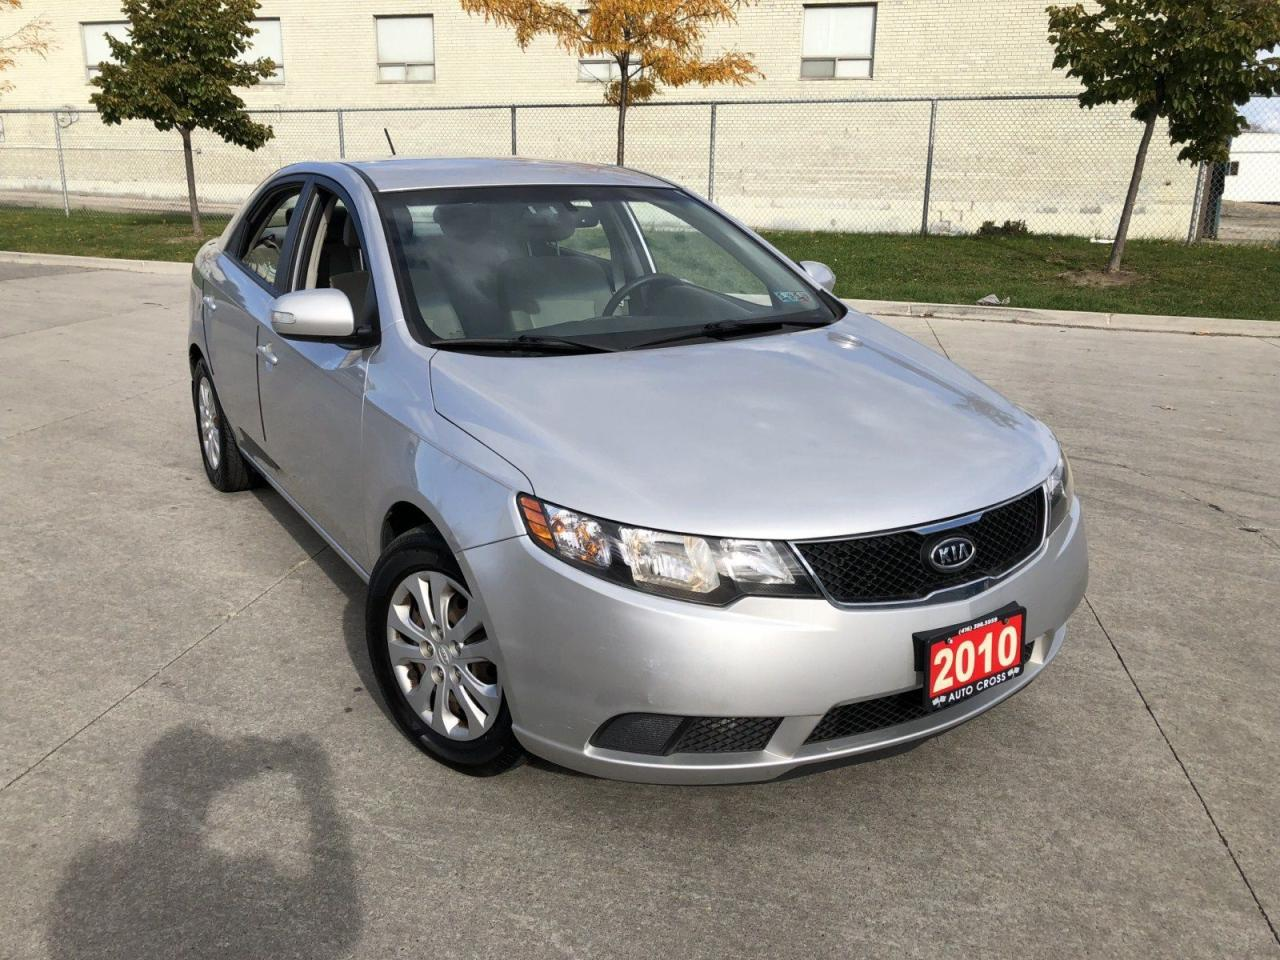 Used 2010 Kia Forte 4 Door, Automatic,3/Y Warranty Available for